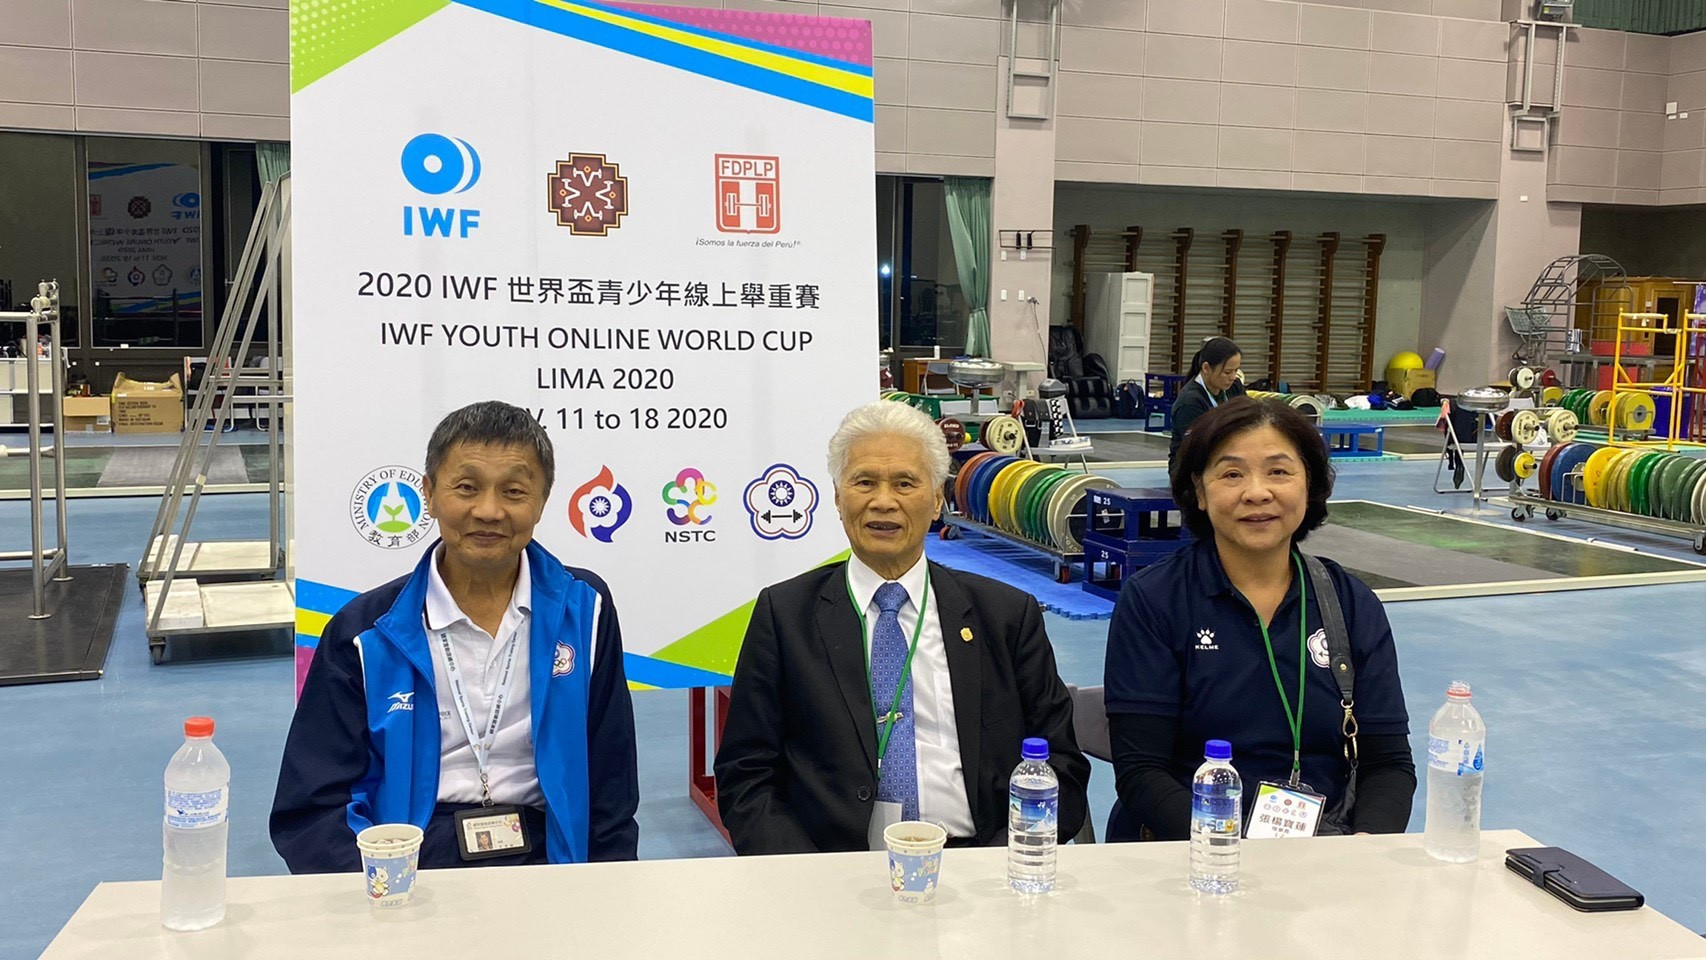 Officials in Taiwan worked through the darker hours of the night to deliver their livestream ©Chinese Taipei Weightlifting